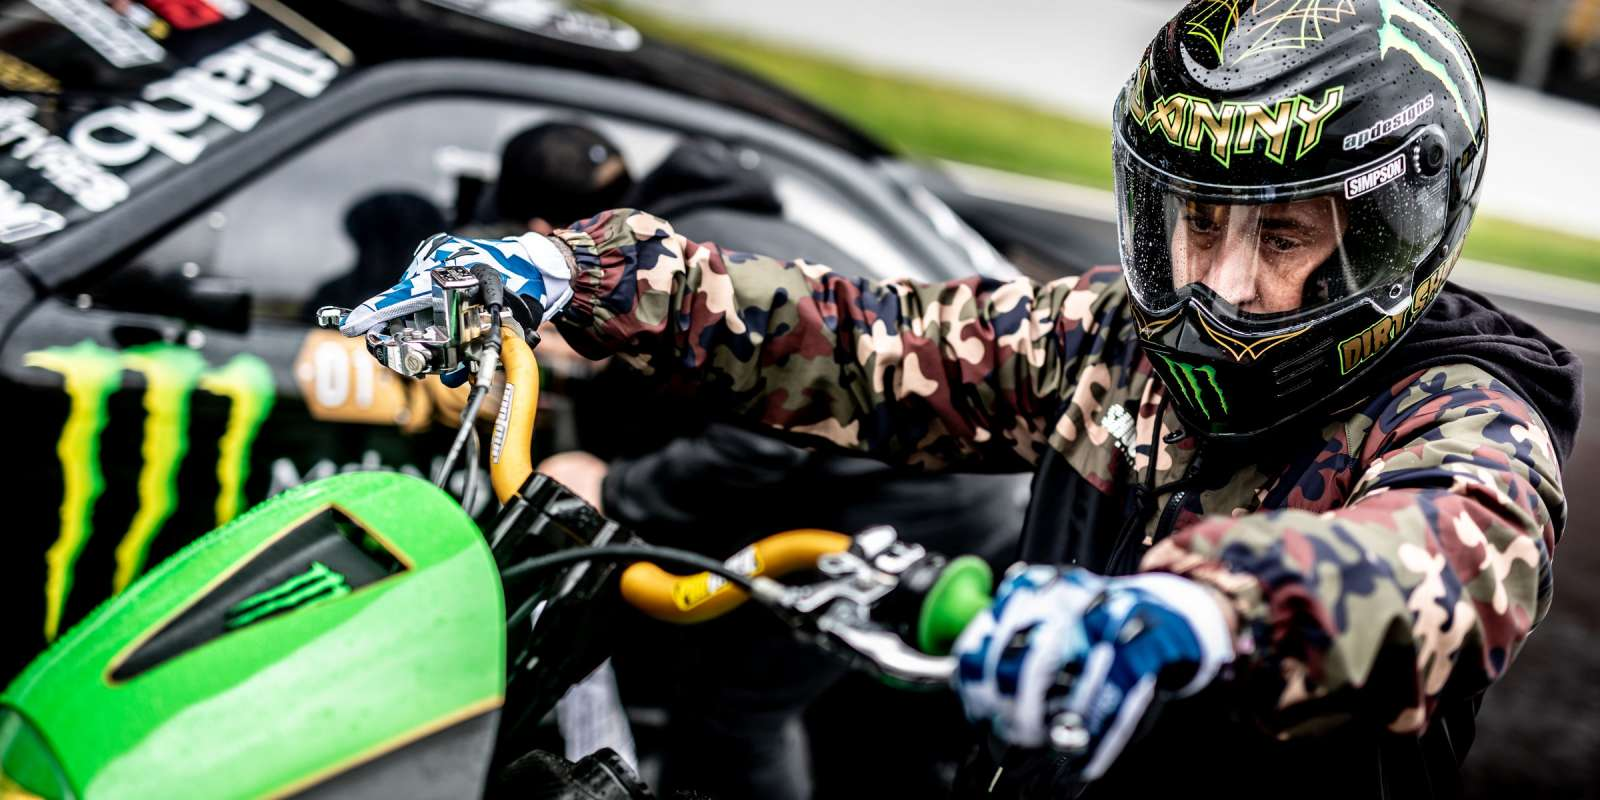 Friday images from the 2018 World RX of Spain